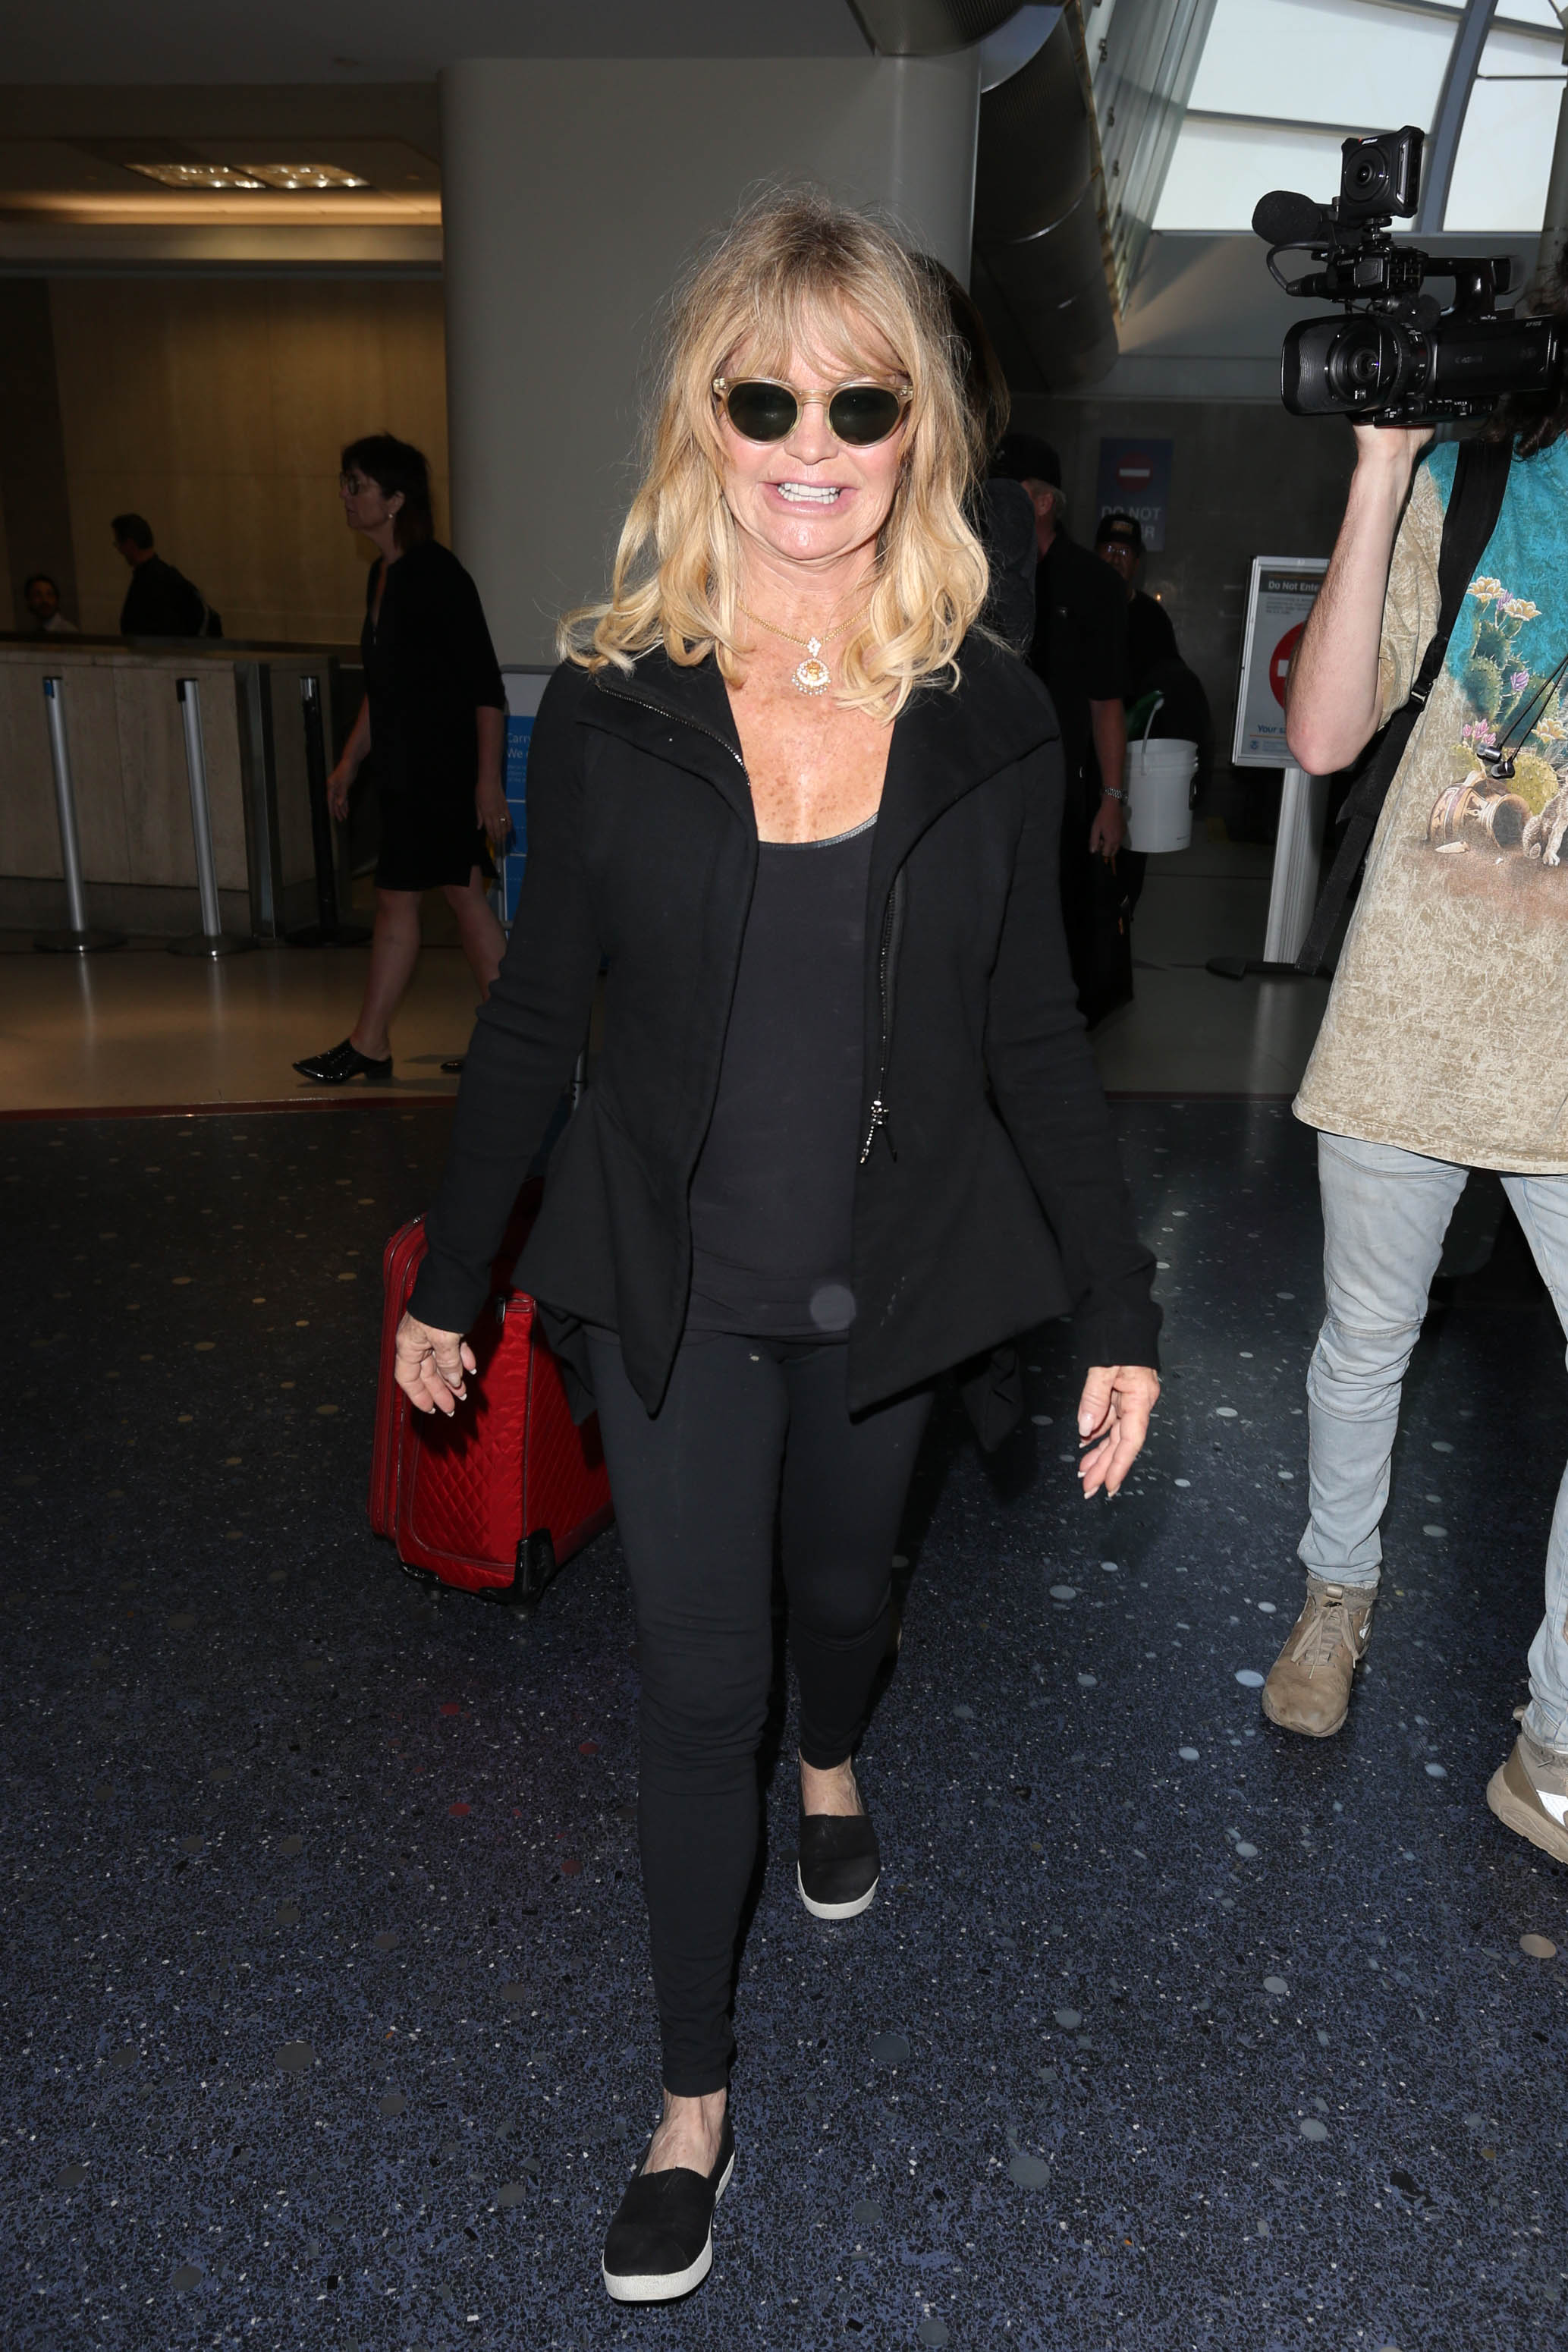 Goldie Hawn is seen at LAX. Image: Starzfly/Bauer-Griffin/GC Images